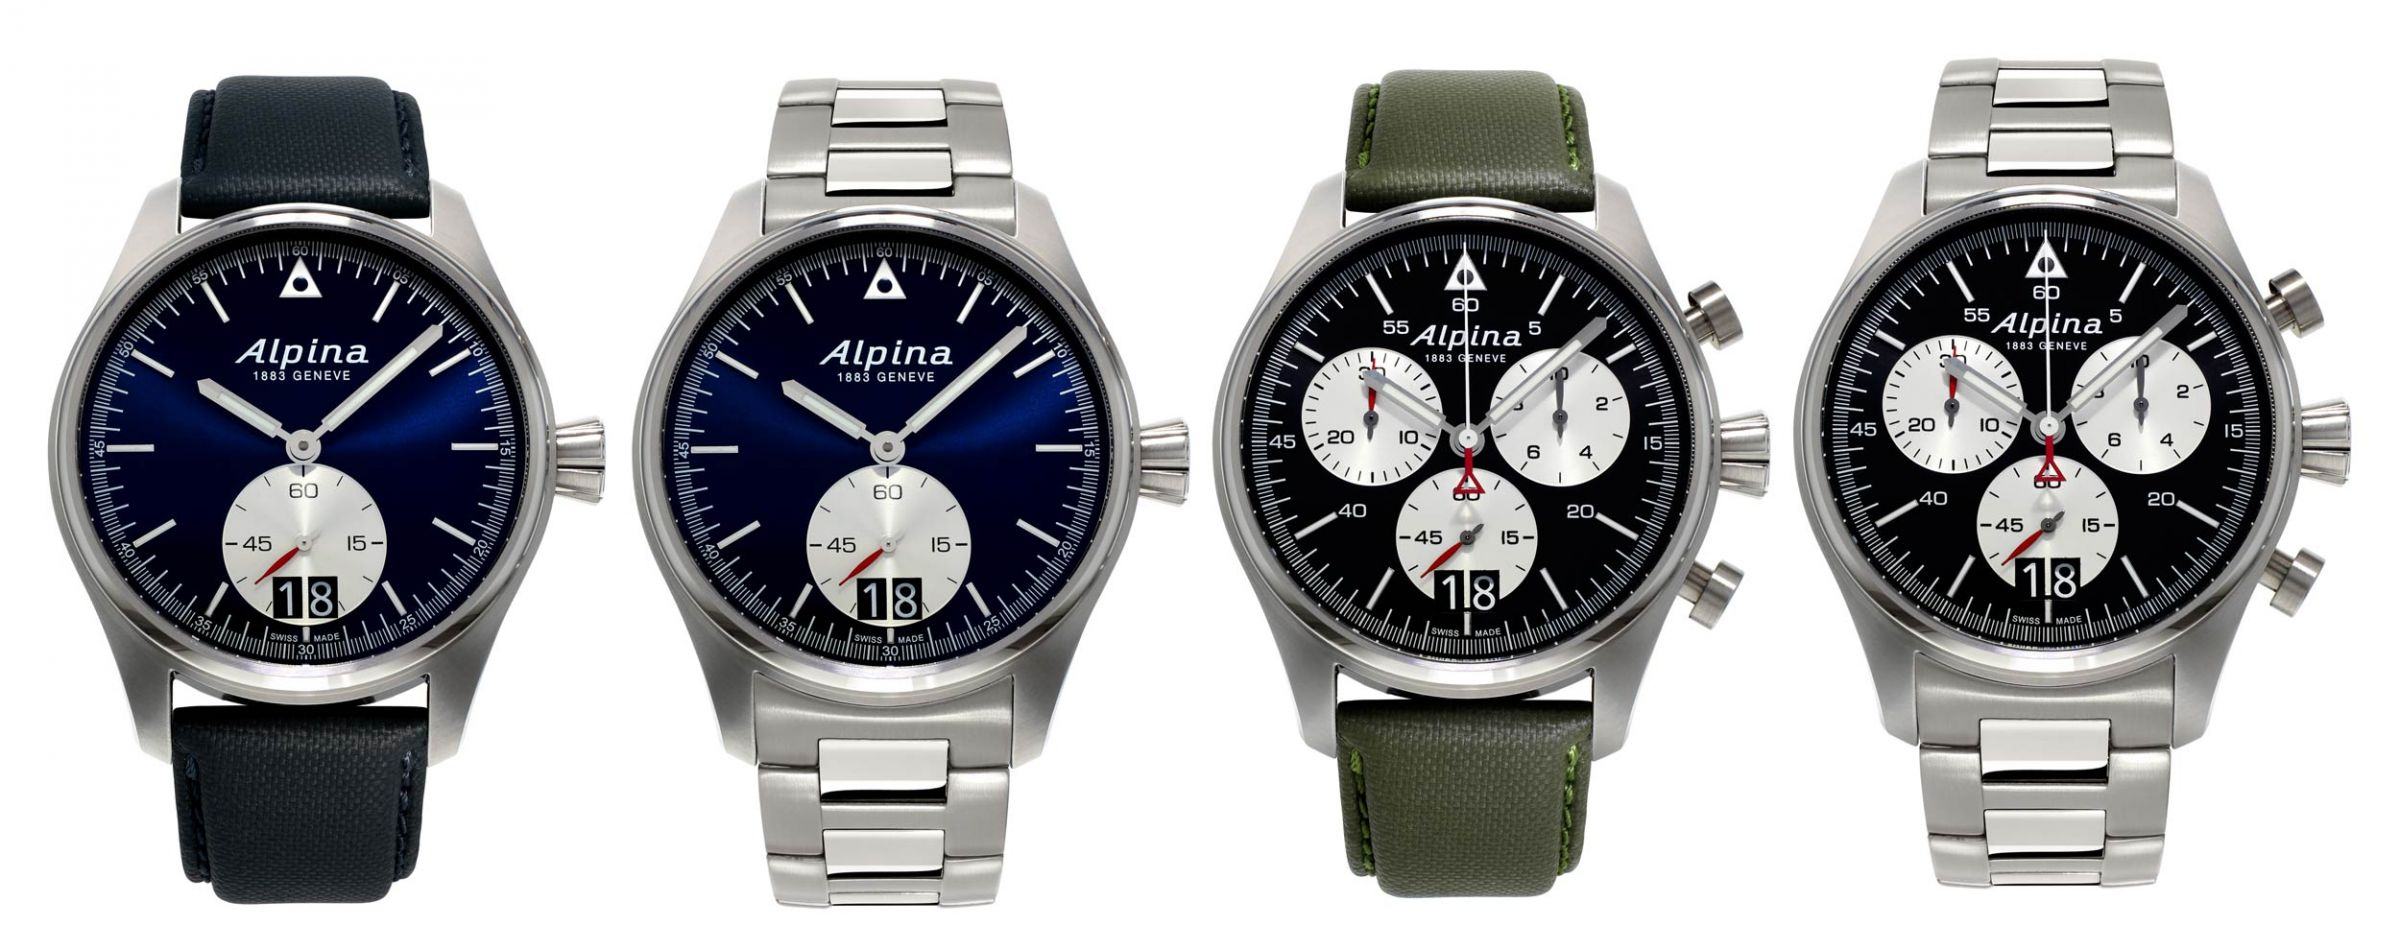 The new Startimer Pilot Big Date professional pilot watches from Alpina 4